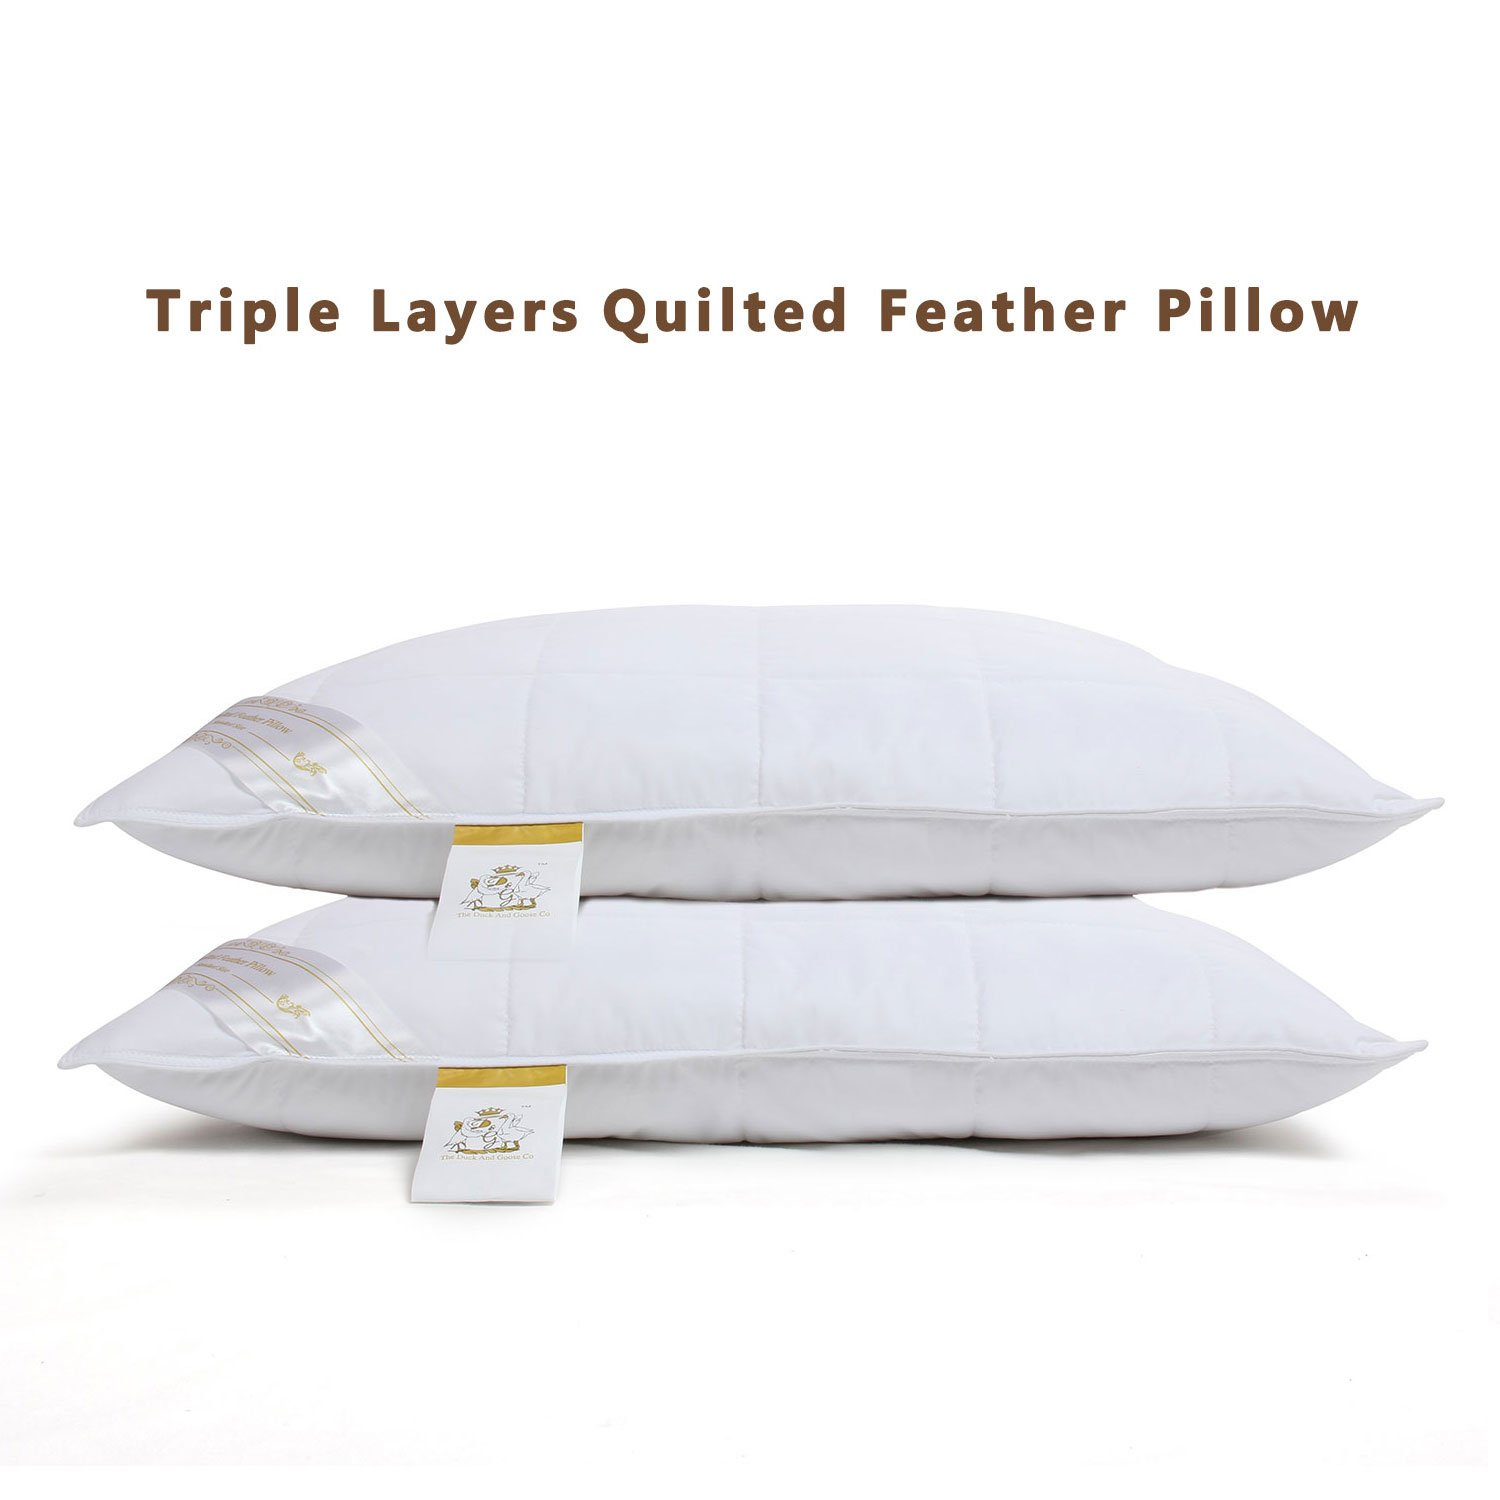 The Duck And Goose Co Quilted Duck Feather Pillow, Set of 2 Triple Layers Hotel Quality Pillow with 100gsm Down Proof Fabric, Avoids Prick Feel King